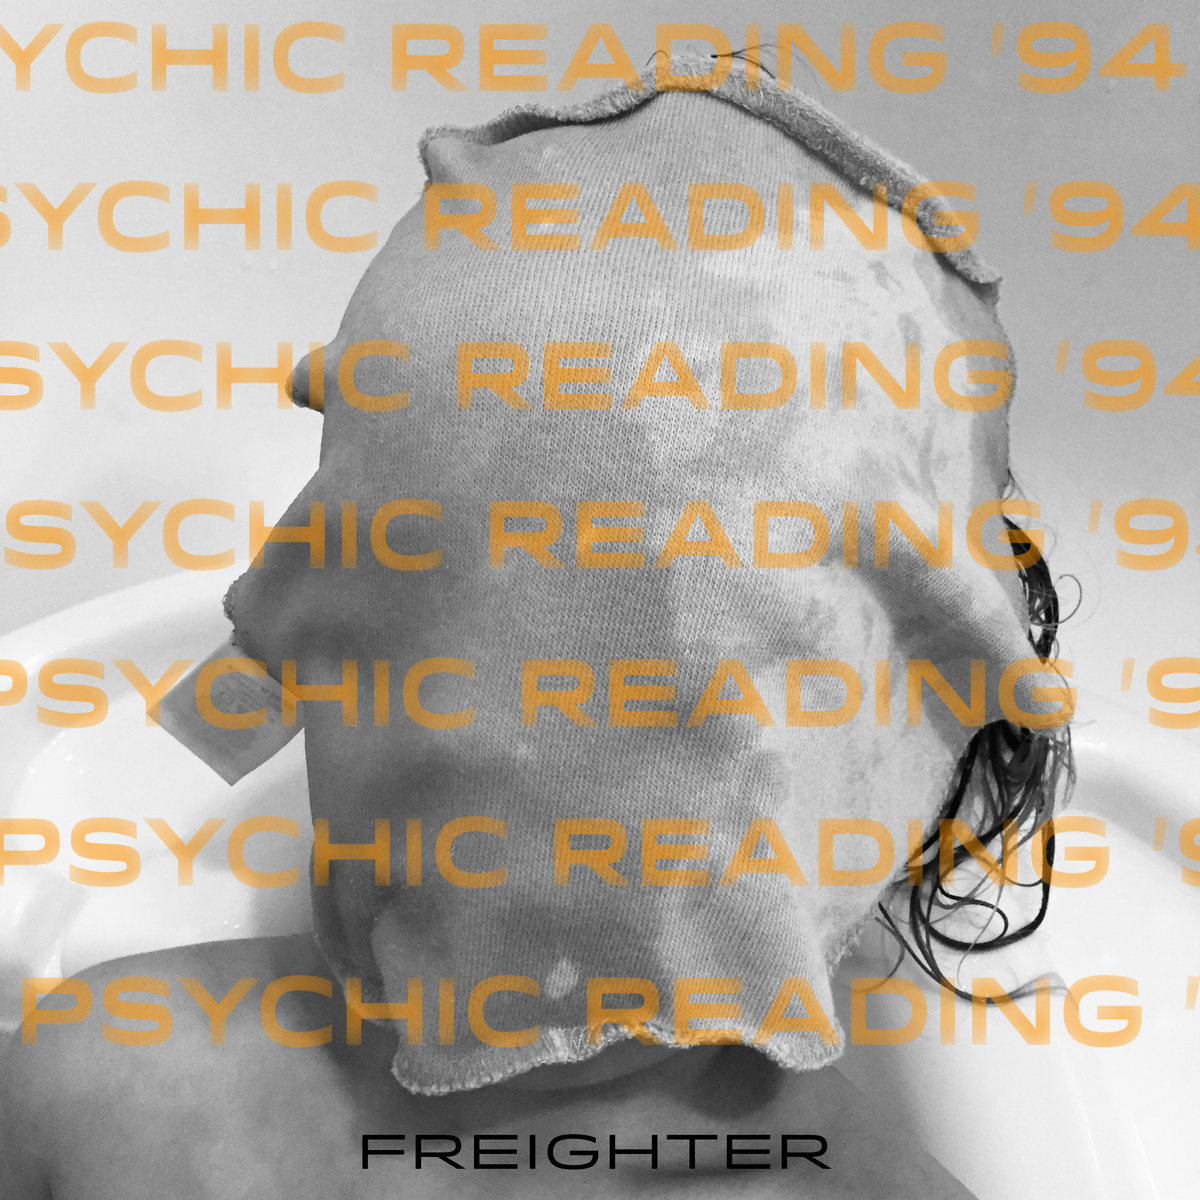 FREIGHTER - Psychic Reading '94 cover